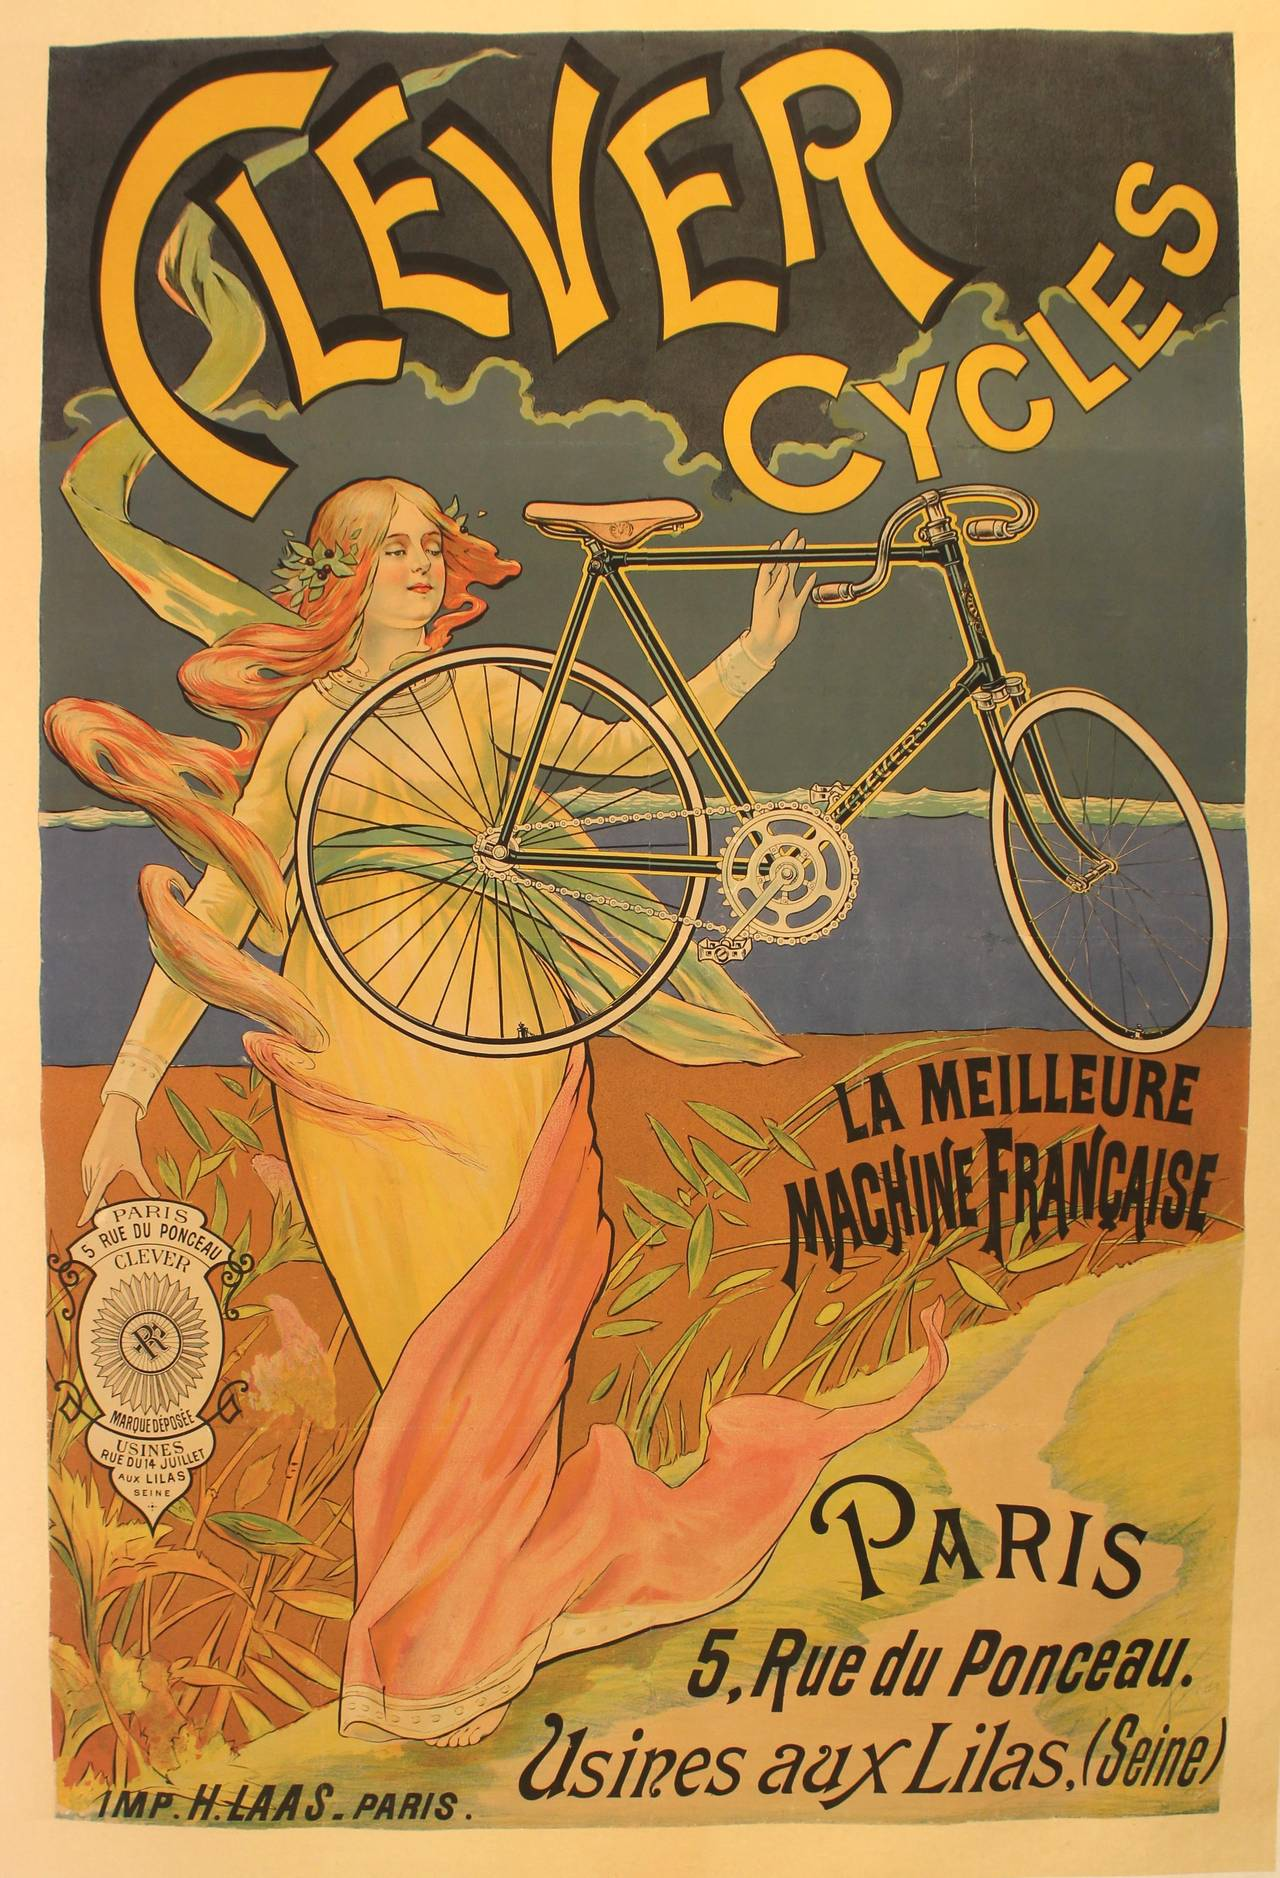 Magasin d'affiches érotiques co uk